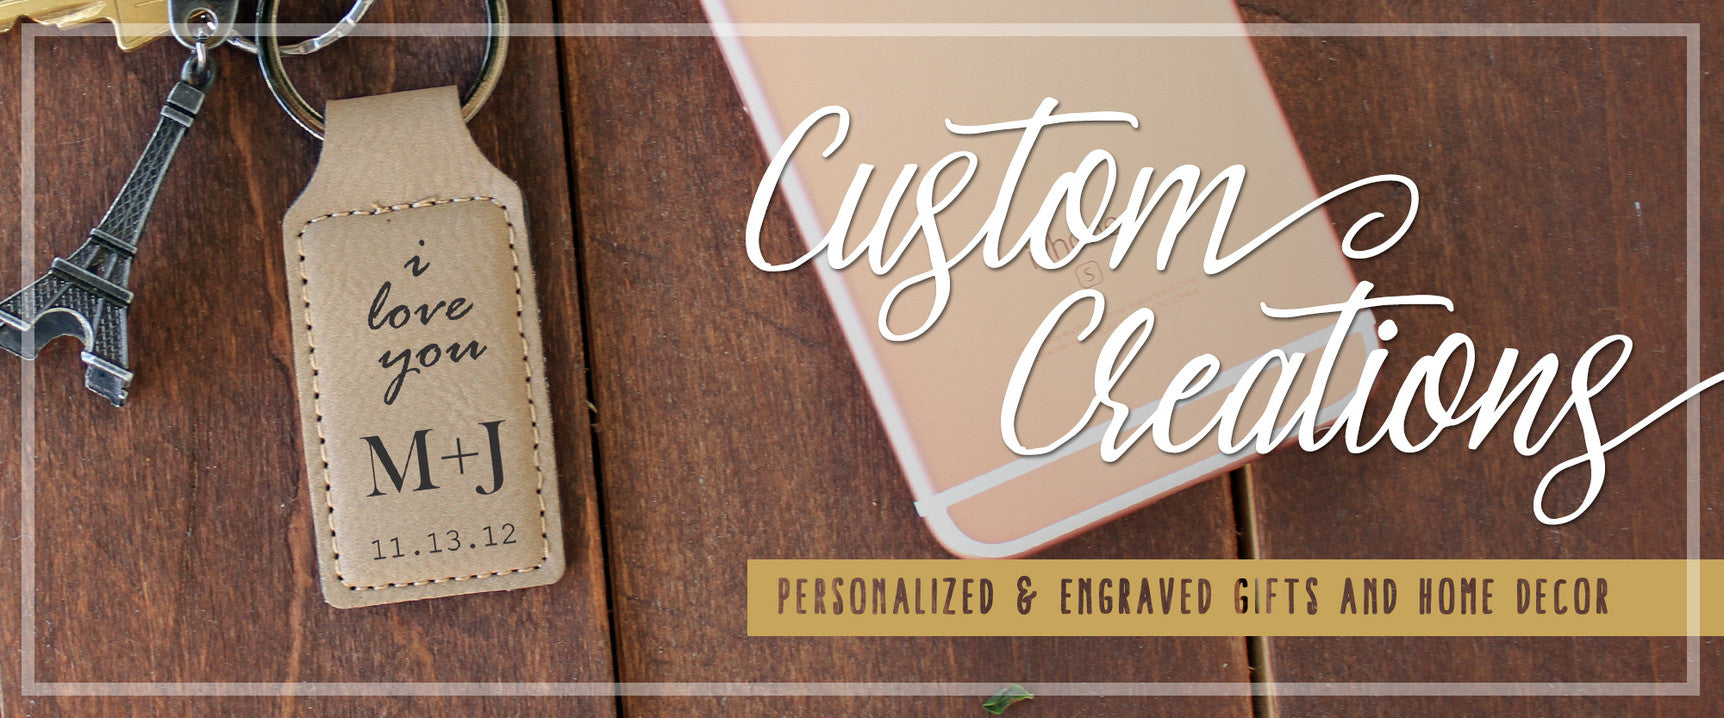 Custom Creations. Personalized and engraved gifts and home decor.